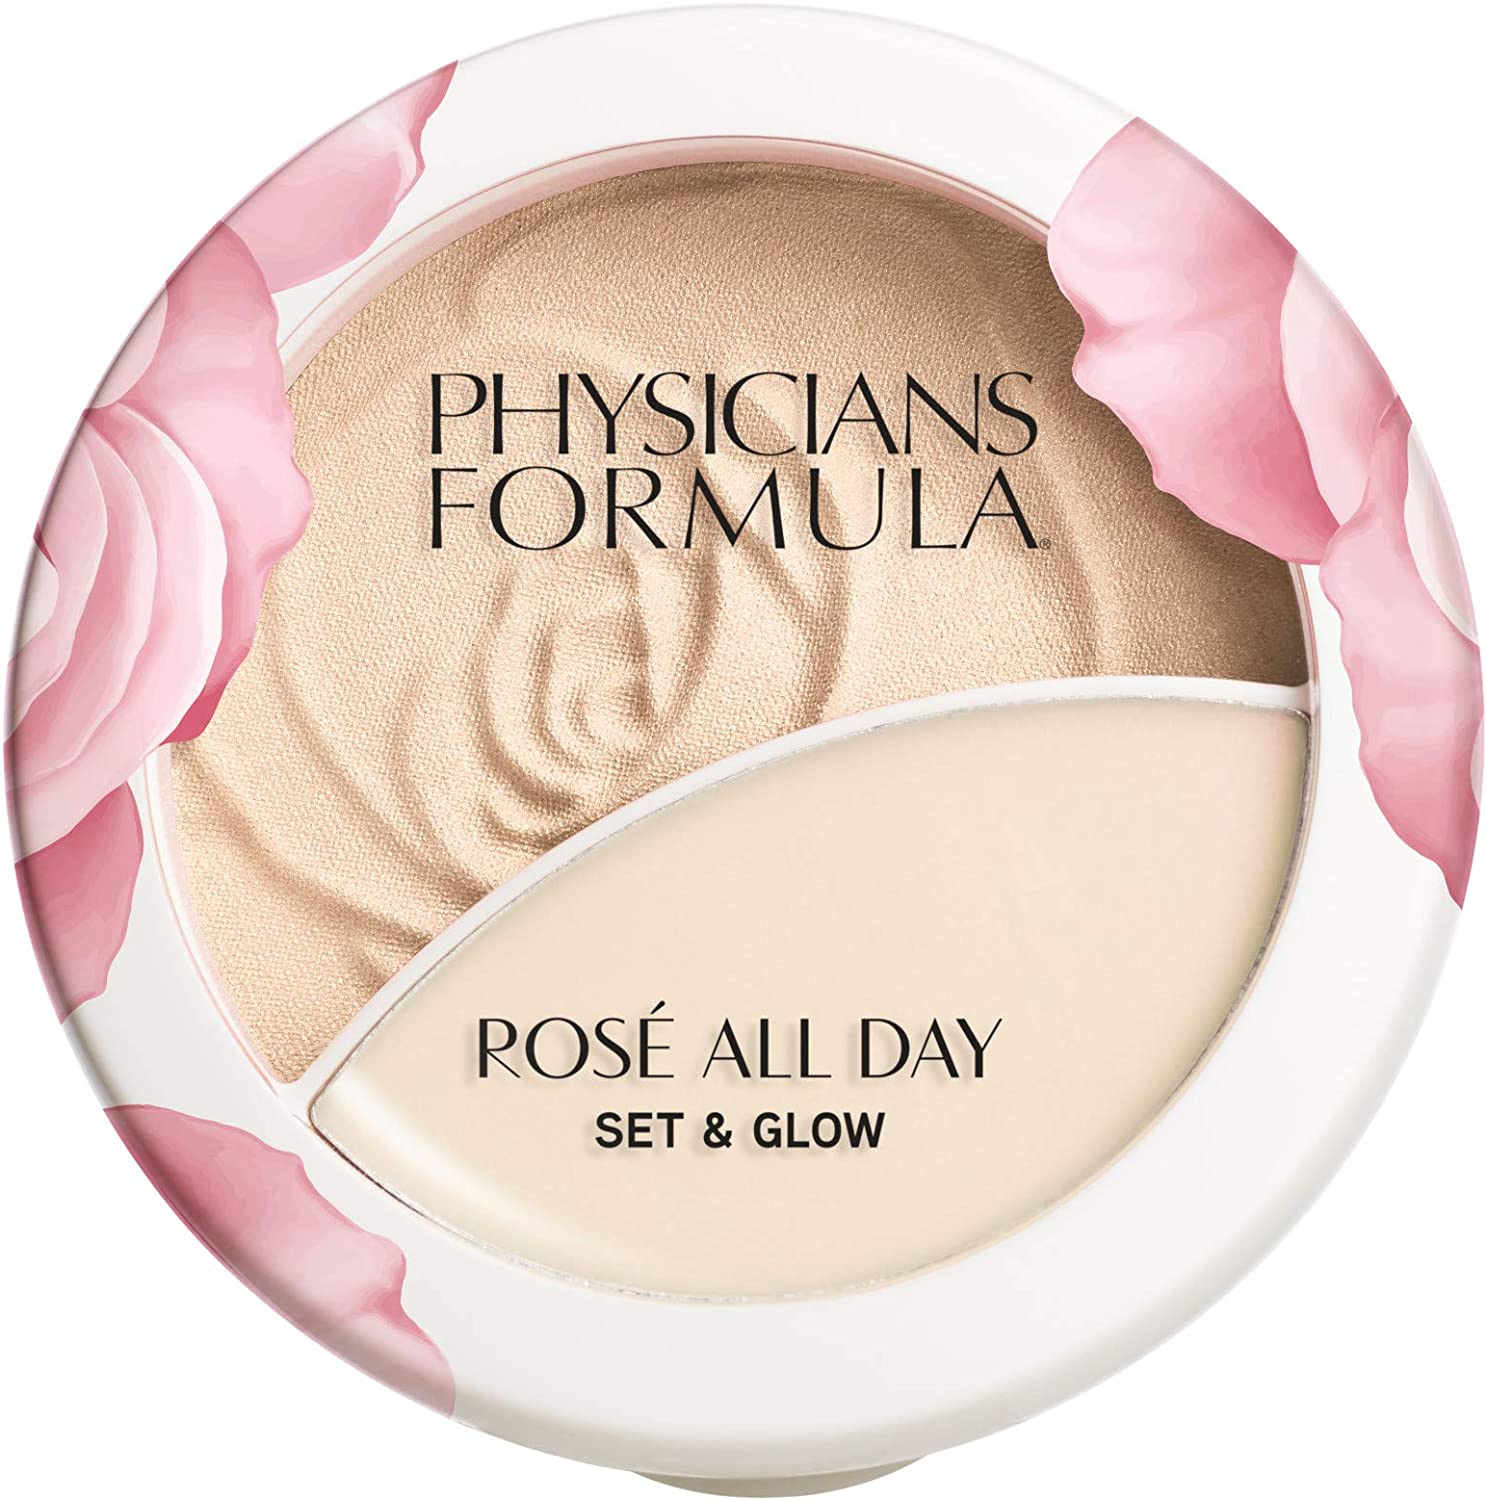 Physicians Formula Rosé All Day Set & Glow Powder & Highlighter Balm, Luminous Light, 0.36 Ounce